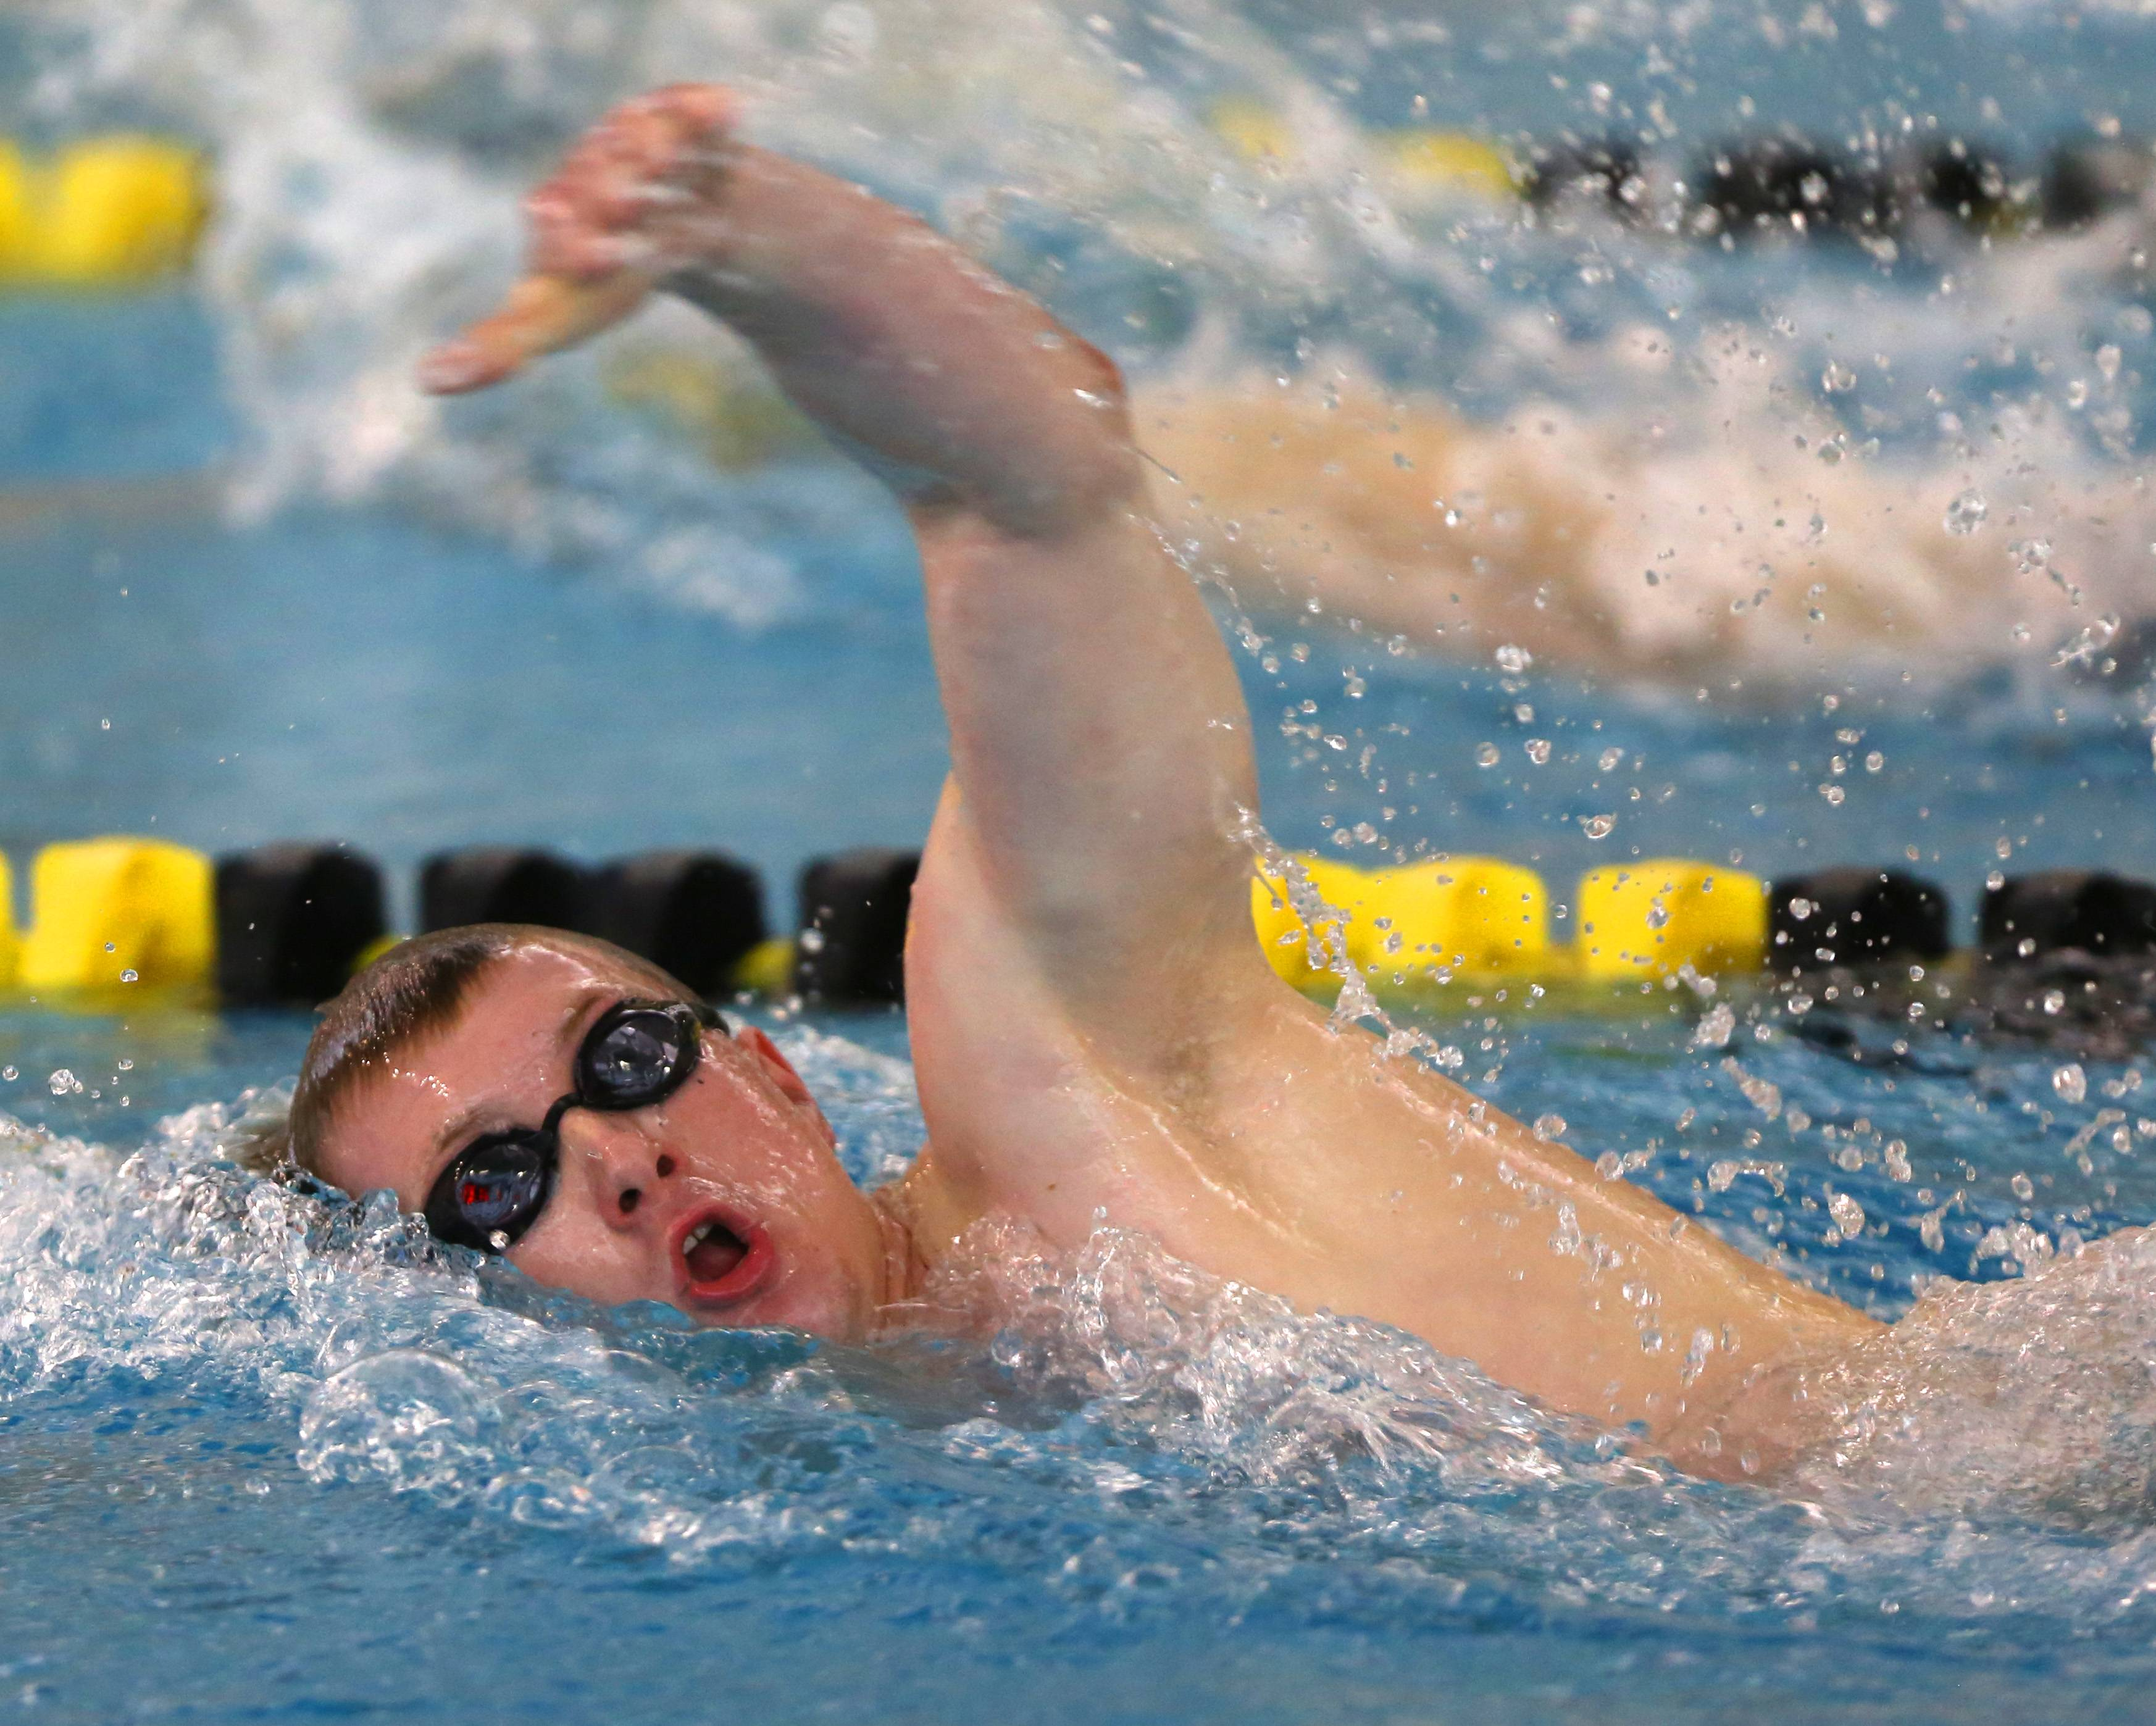 Naperville Central's Connor Lamb swims the 500 yard freestyle during the Metea Valley boys swimming sectional.